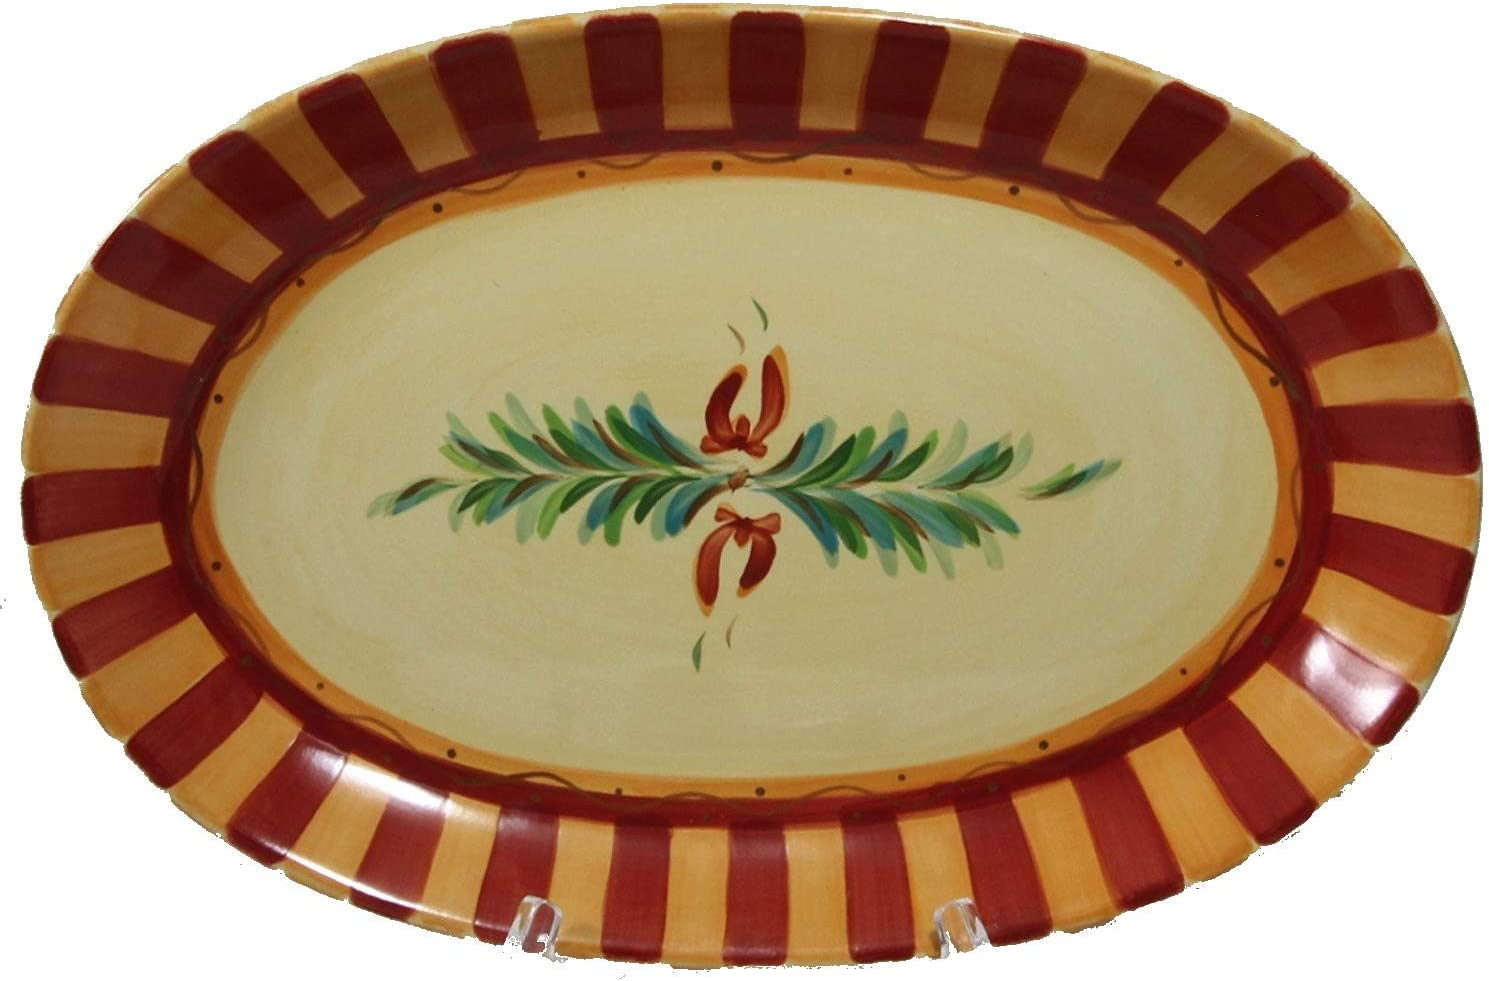 Southern Living at Home Gail Pittman Hand Painted Oval Platter, Sienna